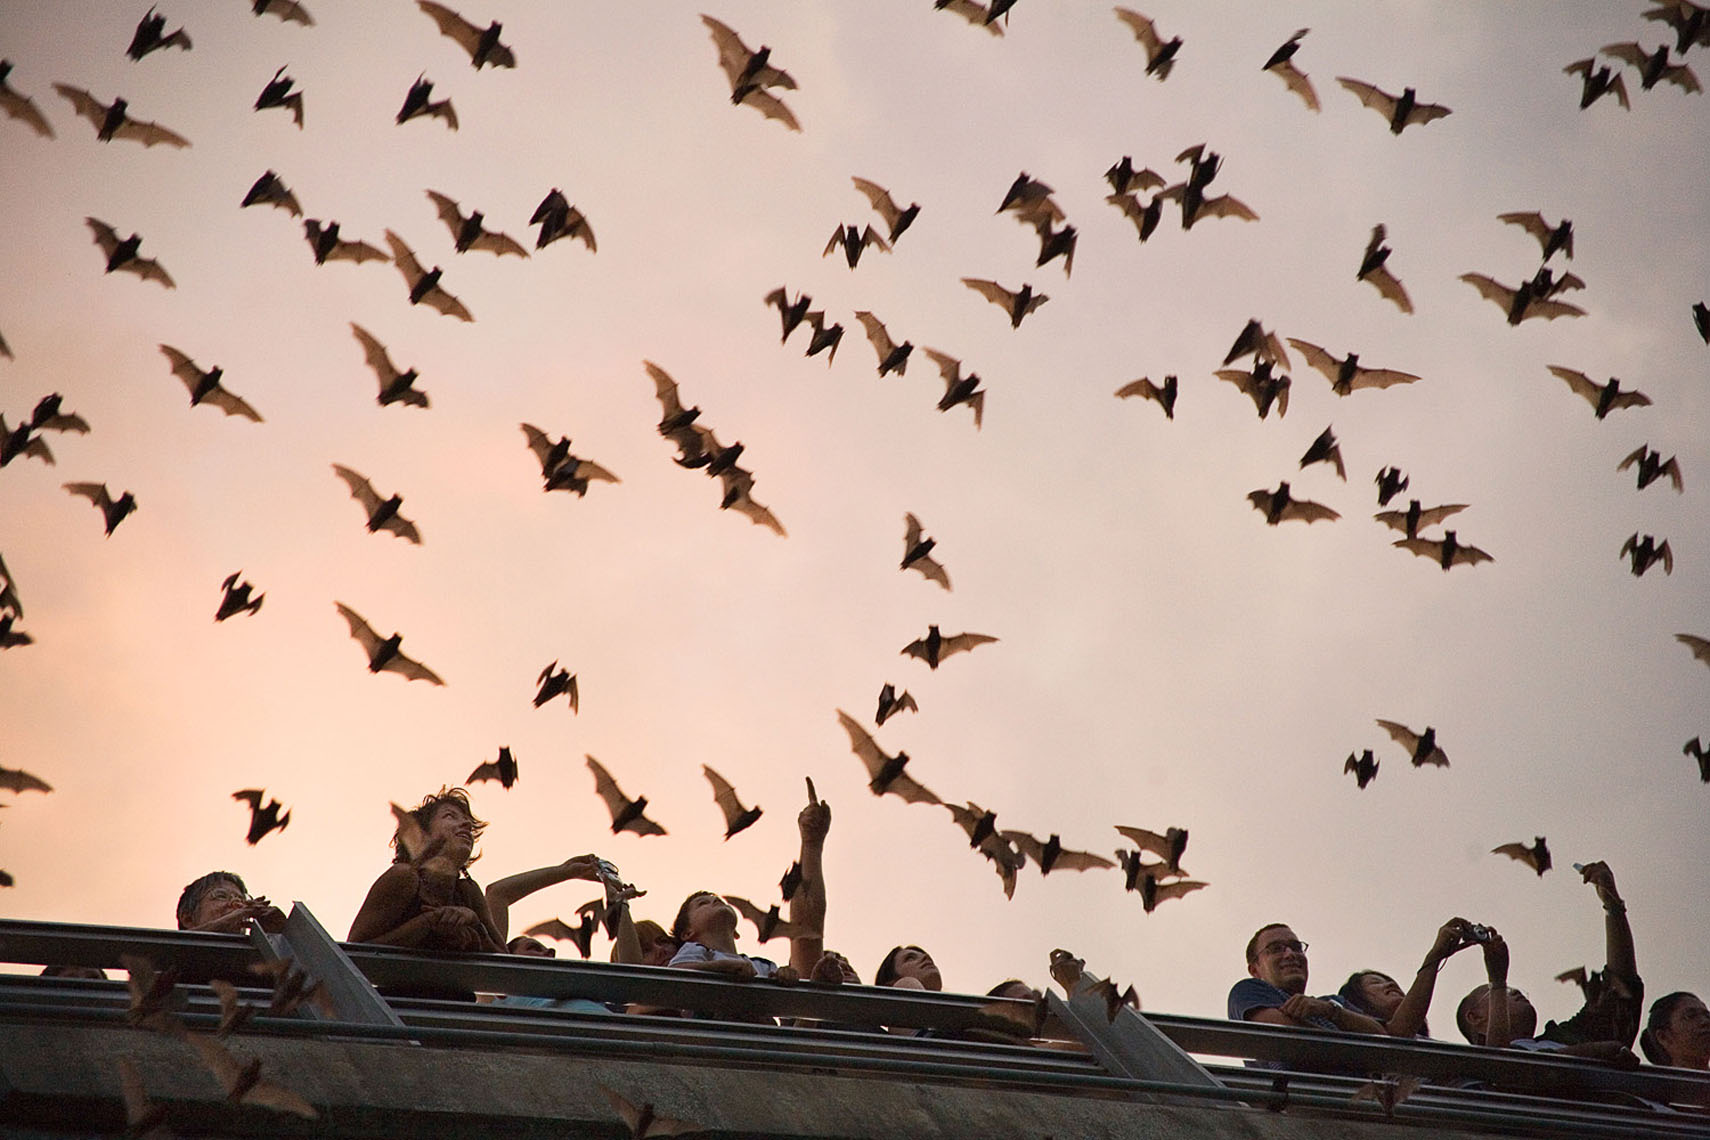 1004Mexican freetail Bats, Ann Richards Bridge, Austin Bats, for National Geographic Traveler